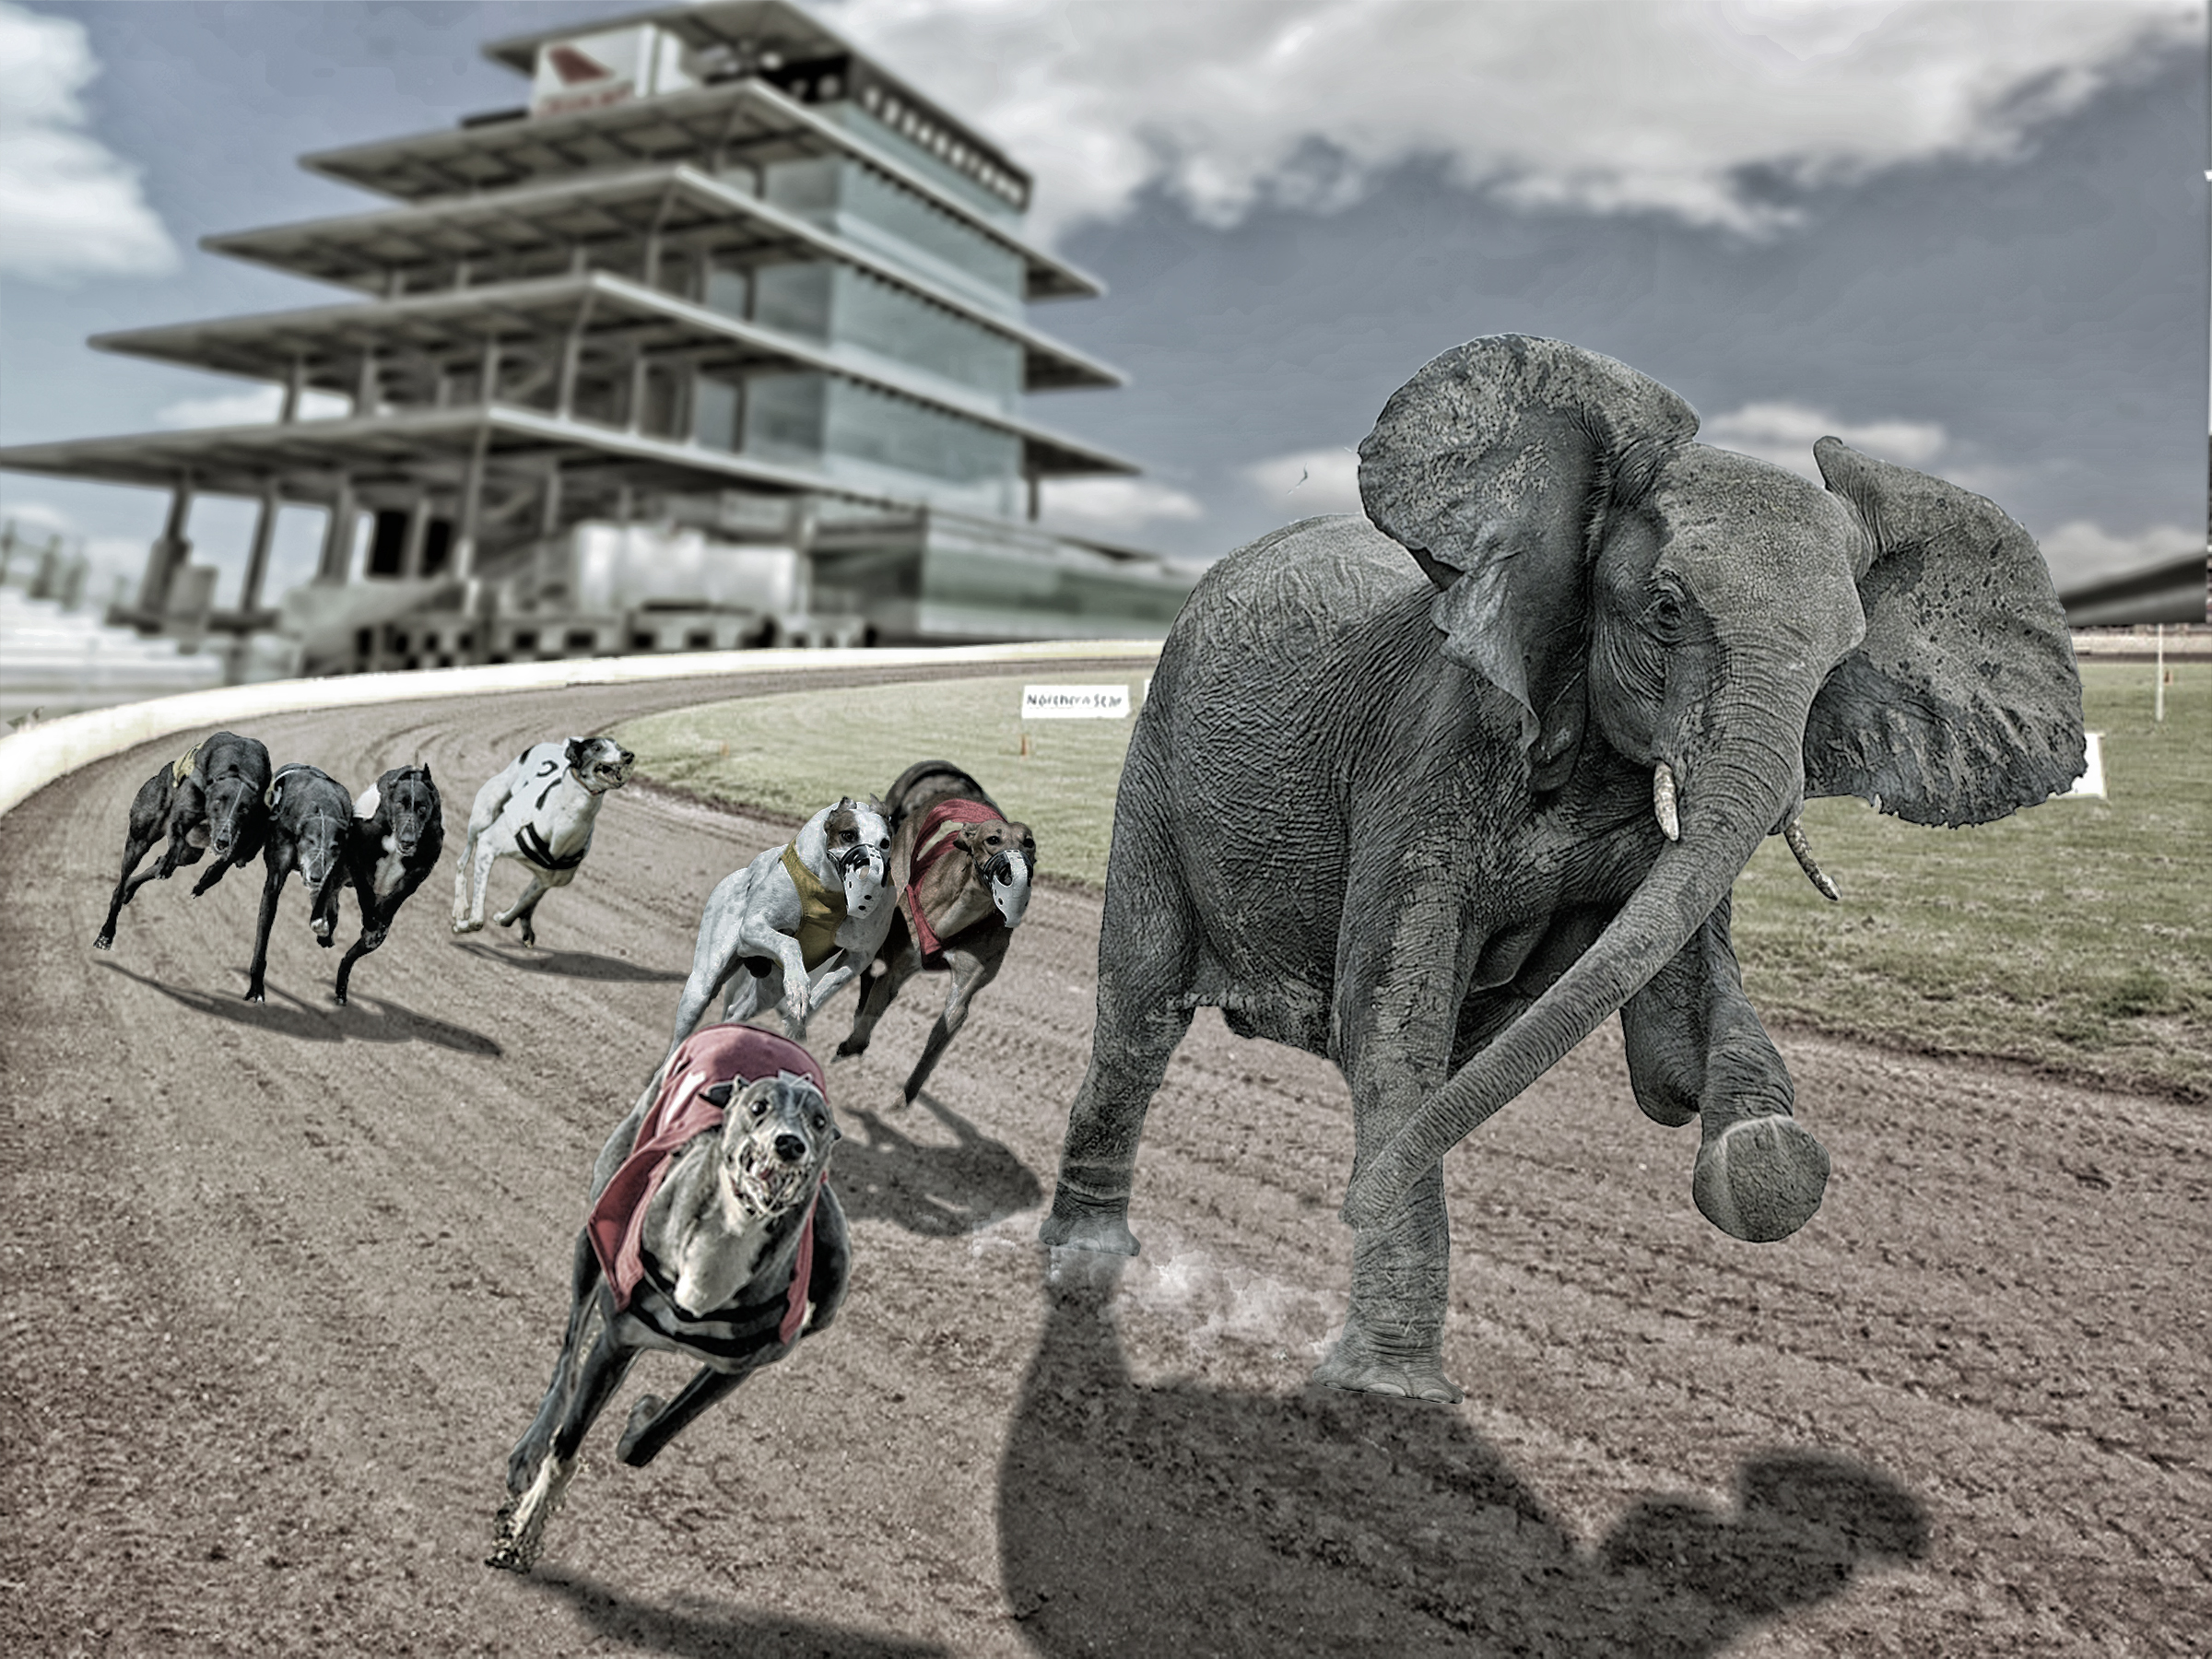 Elephant greyhound race  v1